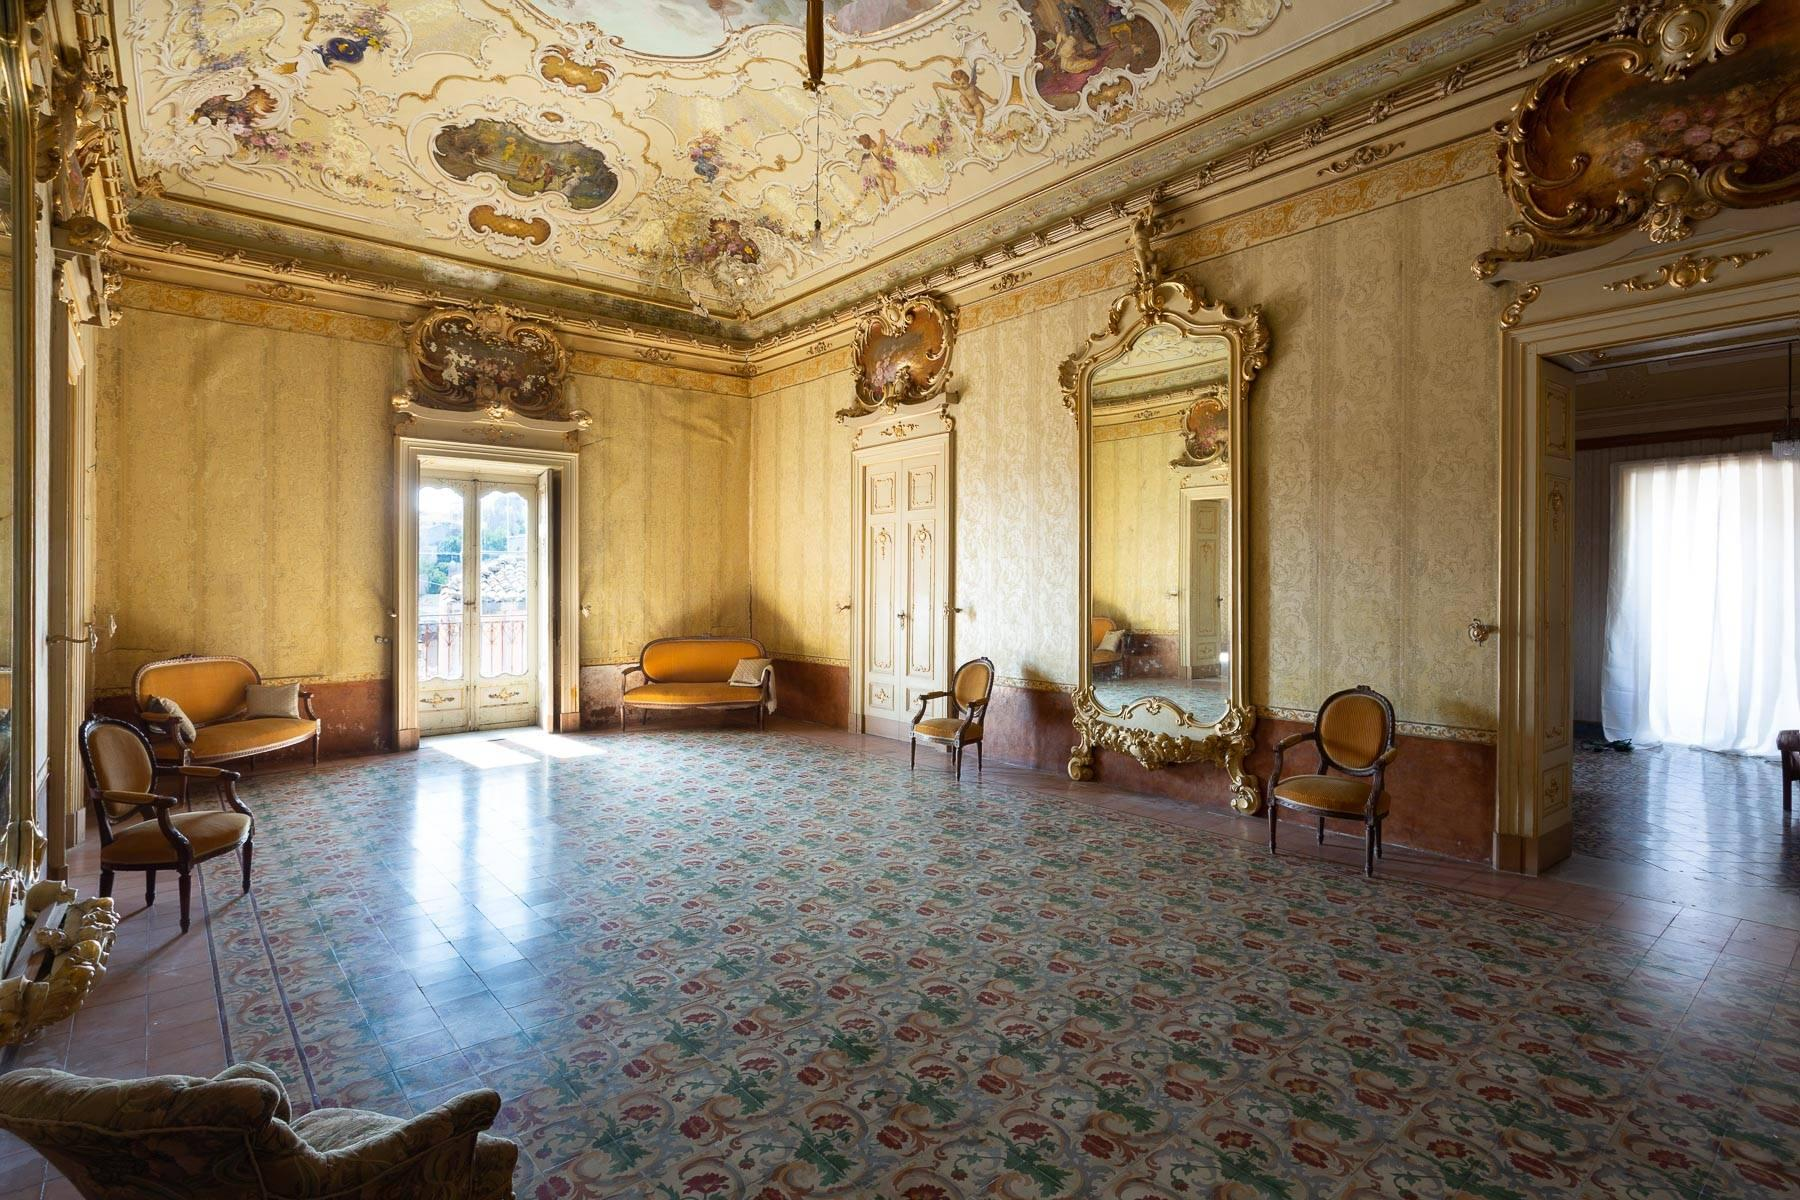 Noble Palace in Palazzolo Acreide - 2